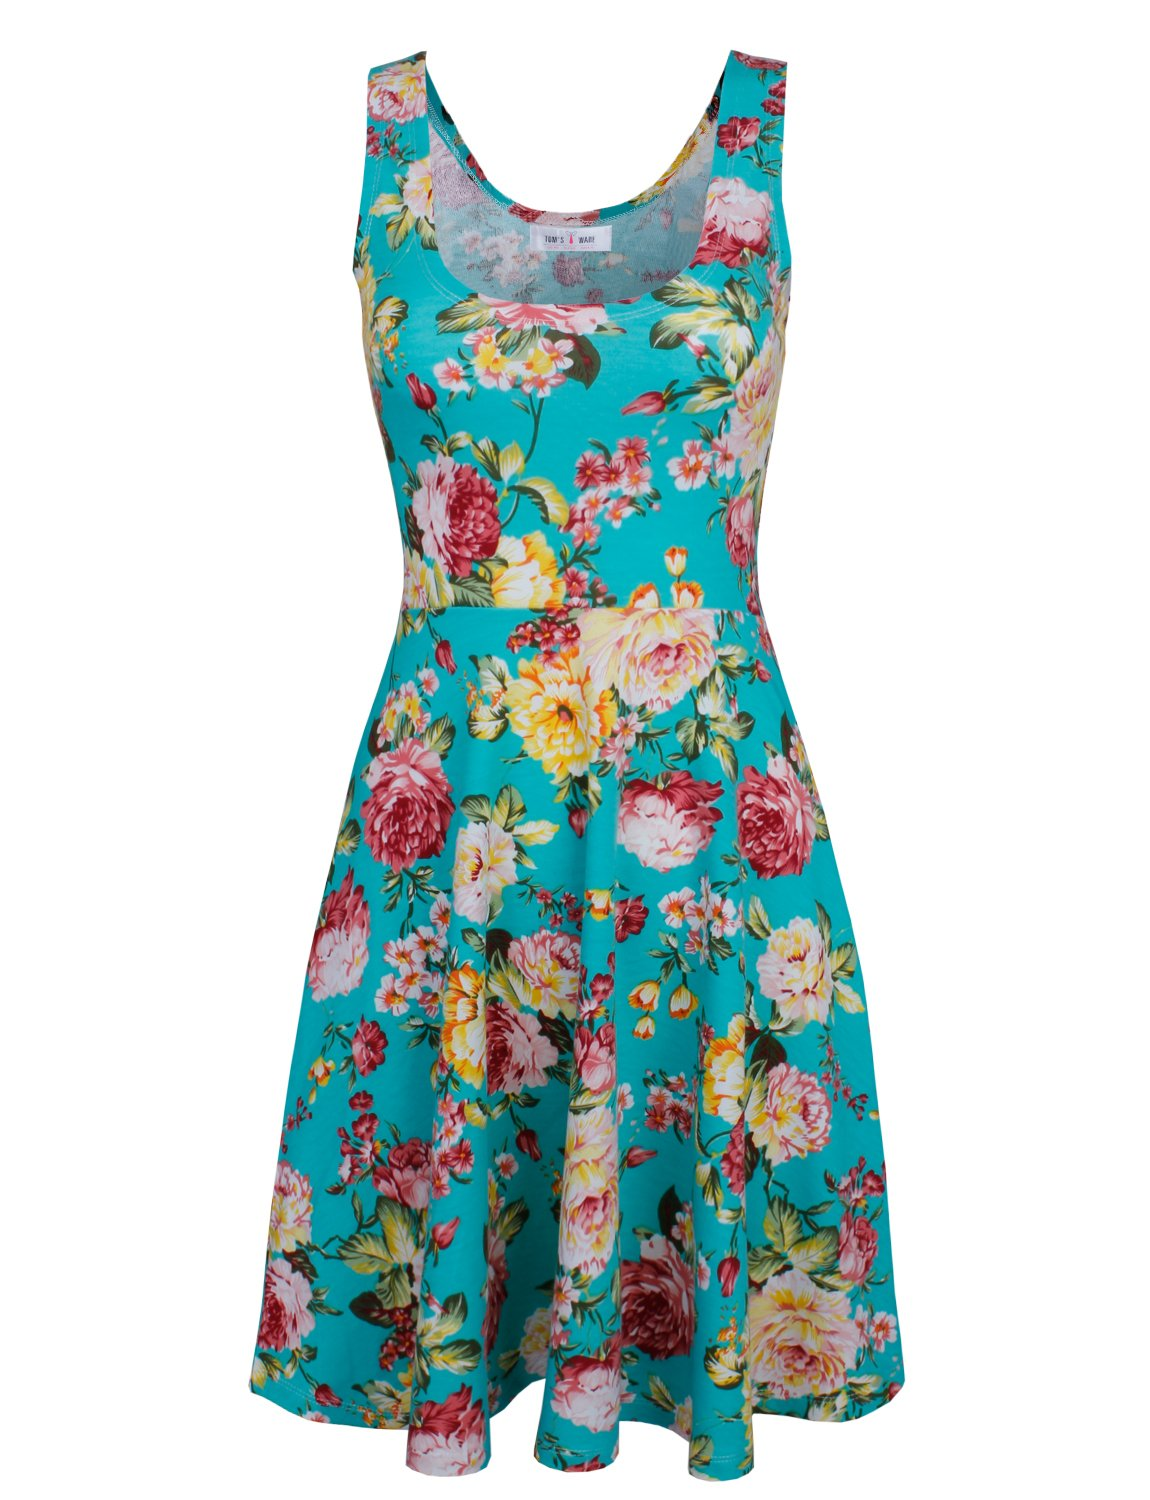 Tom's Ware Womens Casual Fit and Flare Floral Sleeveless Dress TWCWD054-GREEN-US M